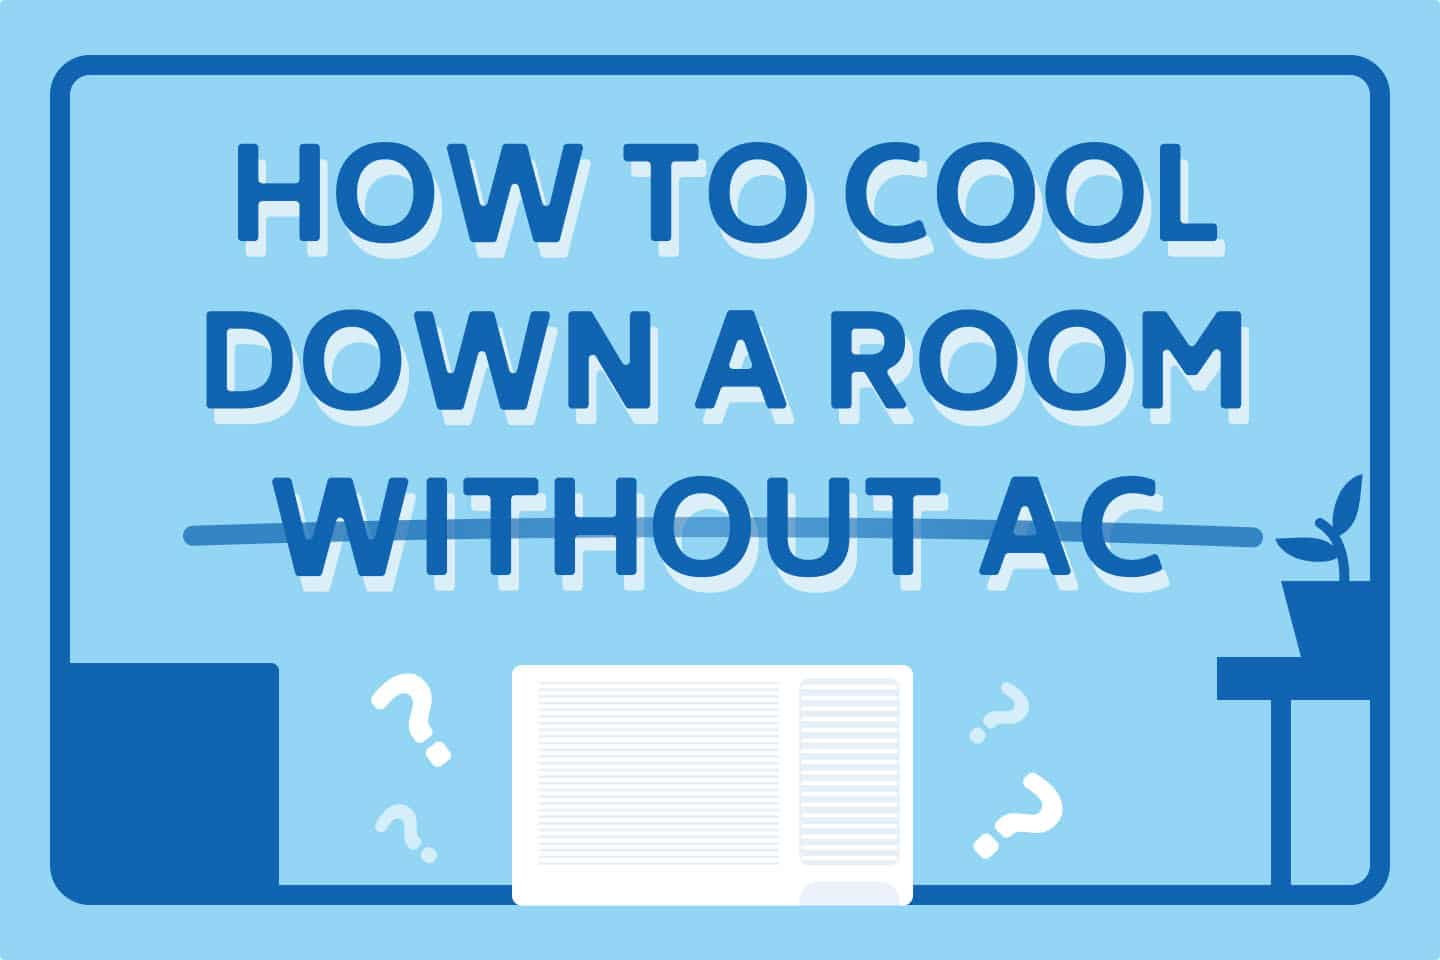 ❄️ How to Cool Down a Room Without Air Conditioner: 41 Tips